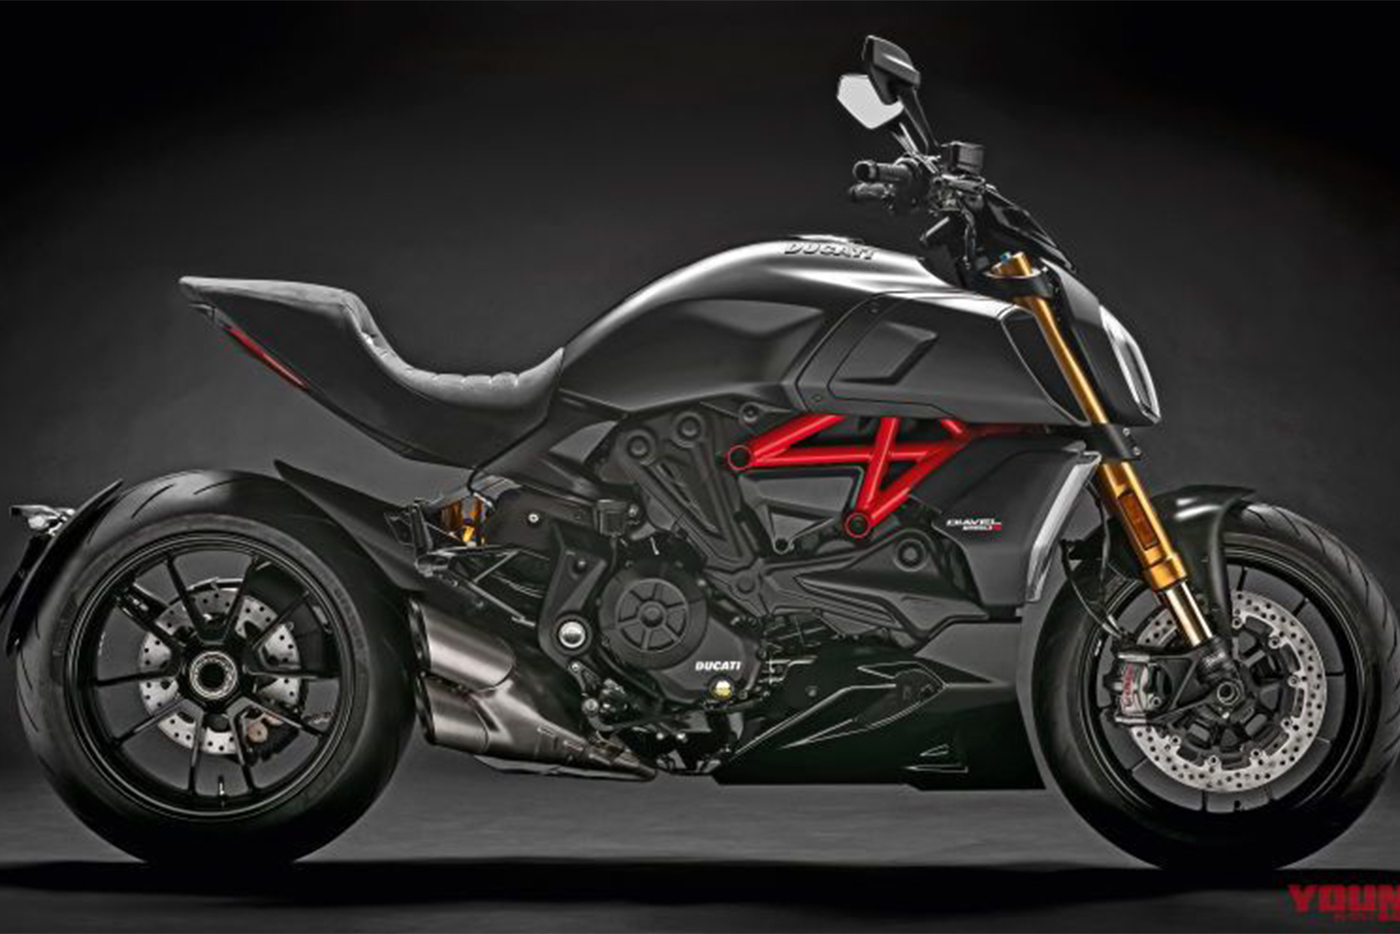 my19-diavel-1260-s-uc69972-high-800x497.jpg